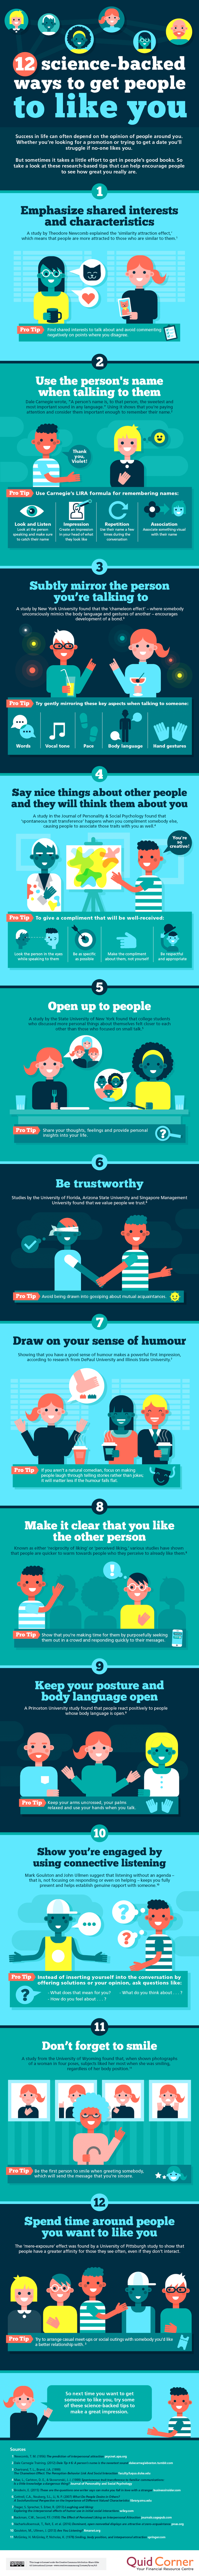 The Likeability Quotient: How to Get People to Like You - Infographic